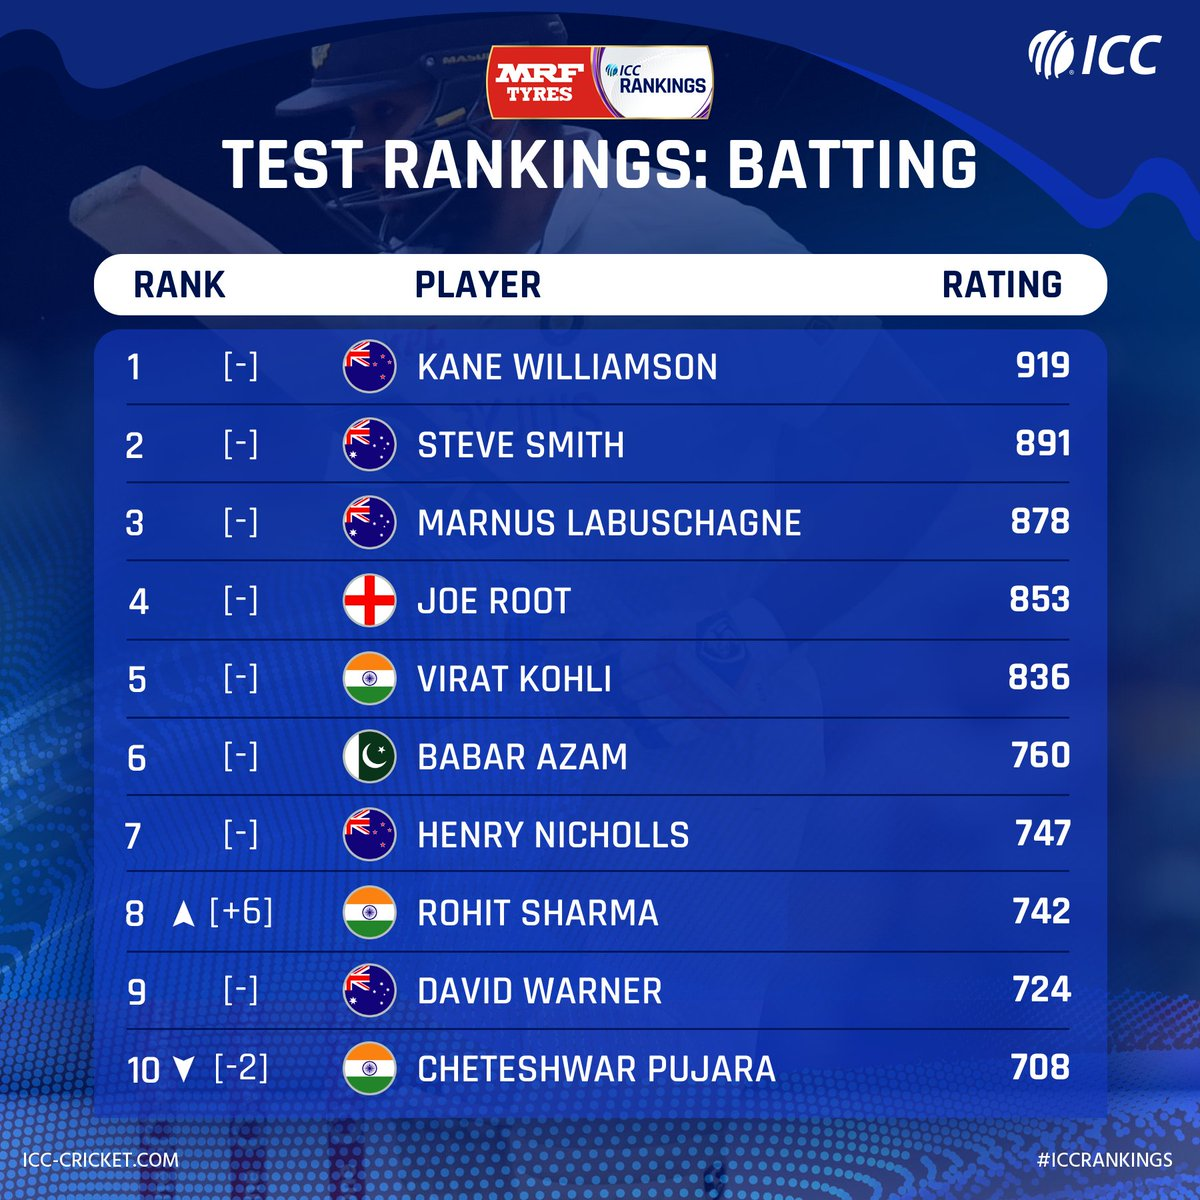 India opener Rohit Sharma storms into the top 10 to a career-best eighth position in the latest @MRFWorldwide ICC Test Player Rankings for batting 💥  Full list: